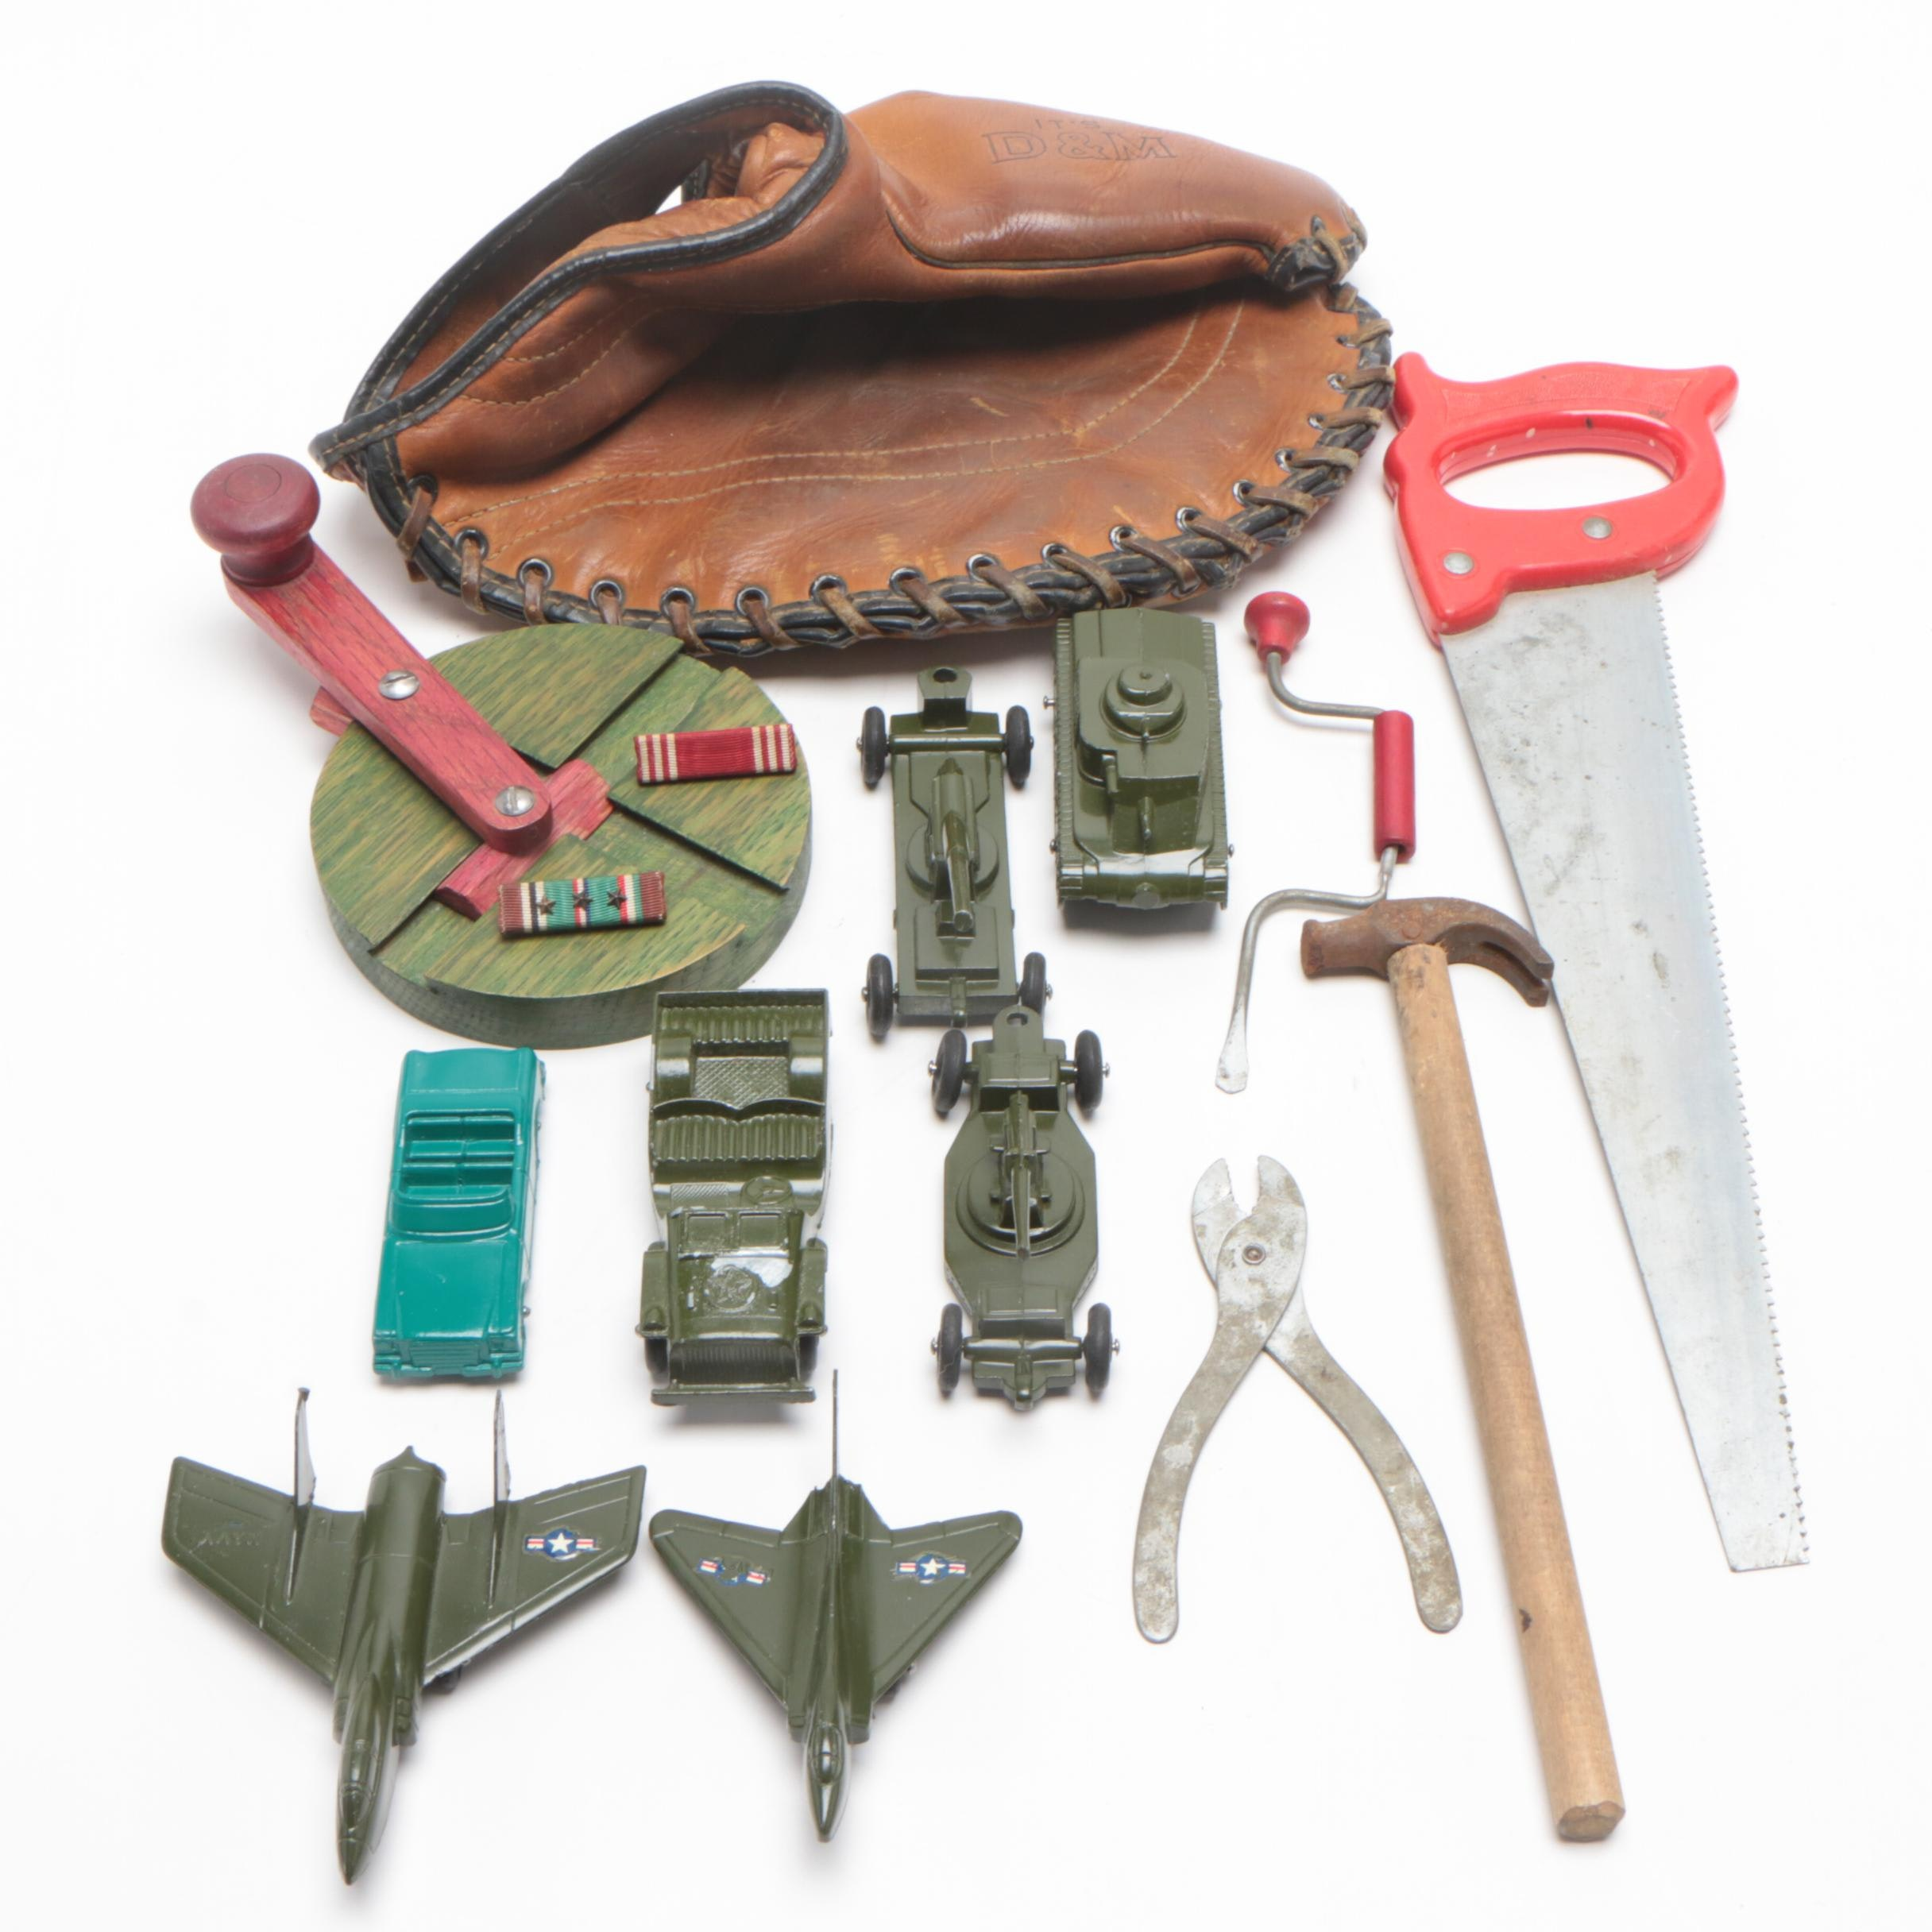 Tootsietoys Miniature Military Vehicles, D&M Baseball Glove, and Tools